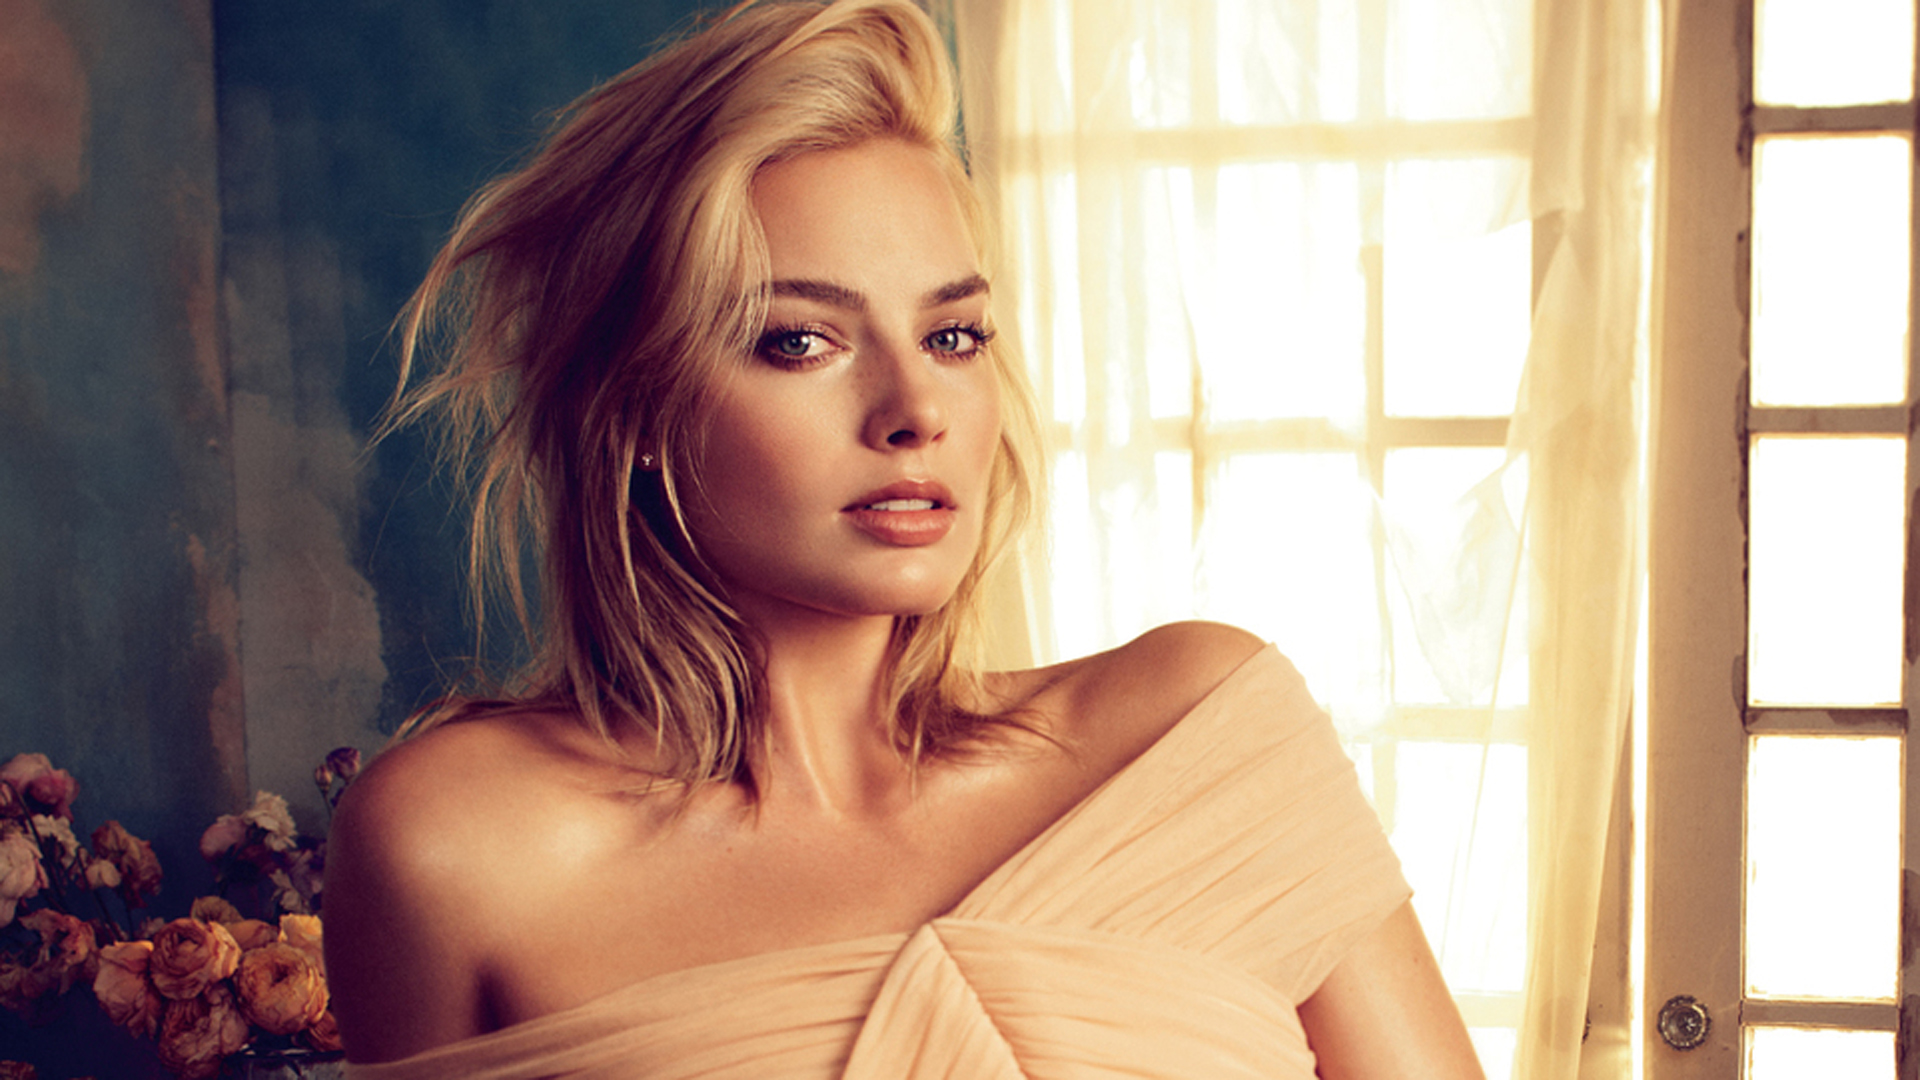 1920x1080 Margot Robbie Hot Wallpaper - just awesome wallpaper pics